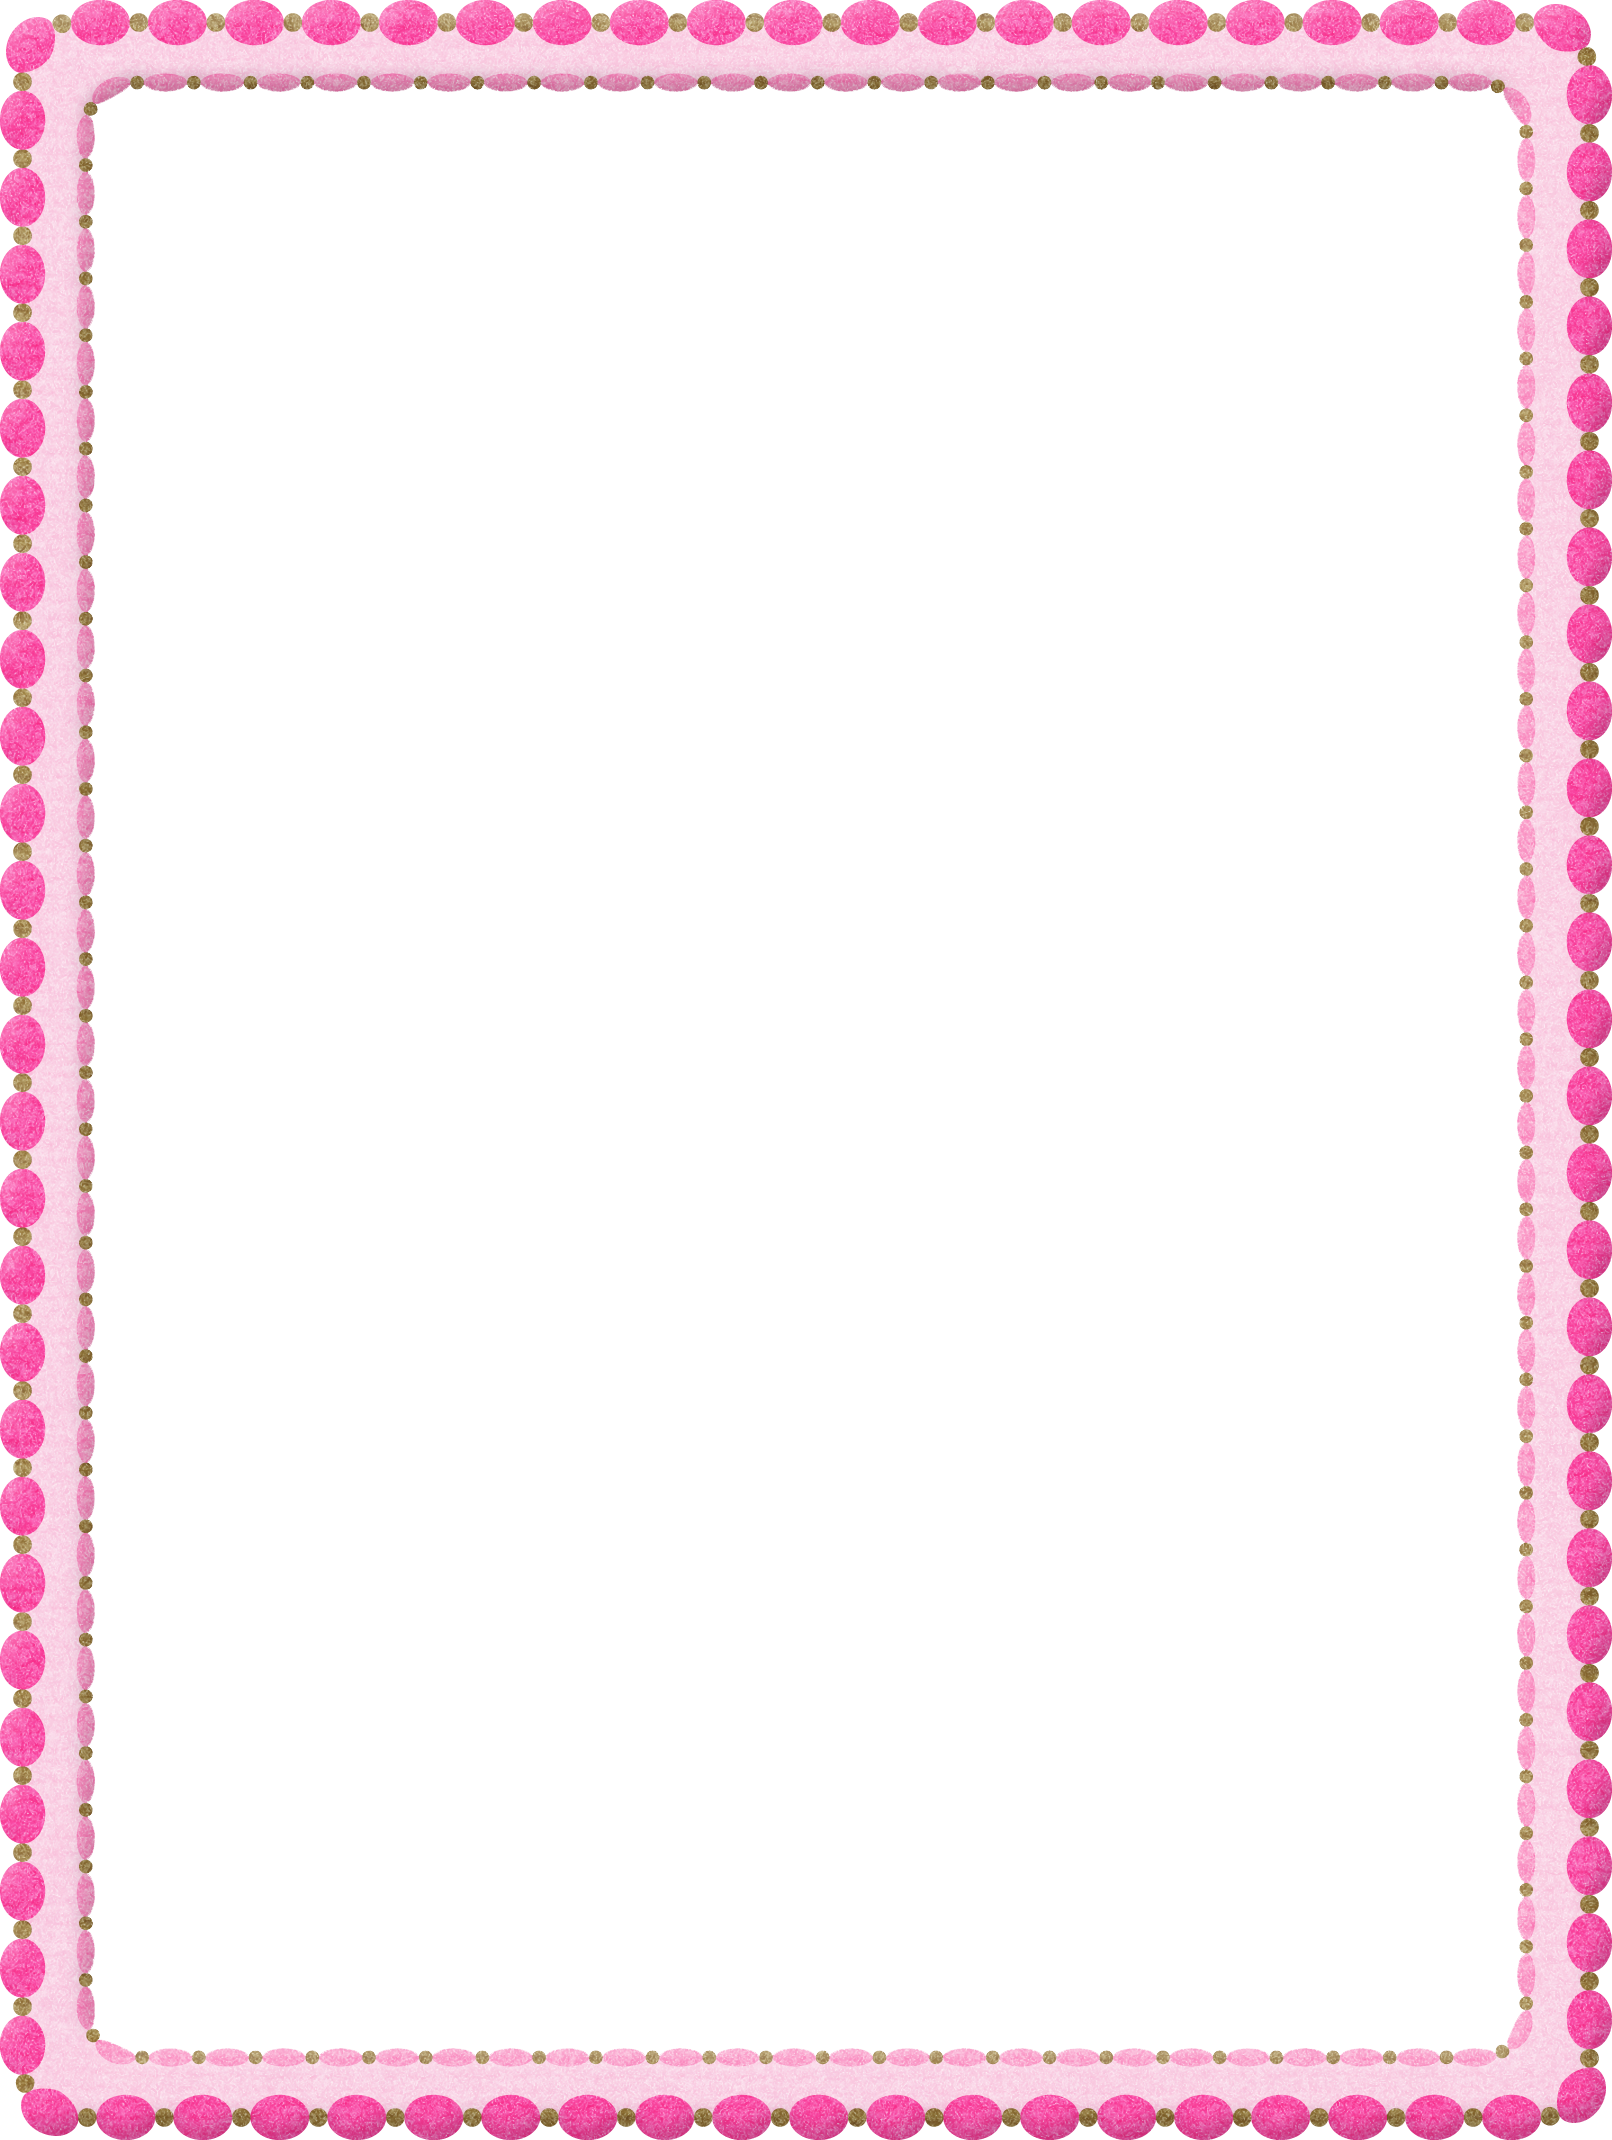 Pink square png. Icon frame transprent free